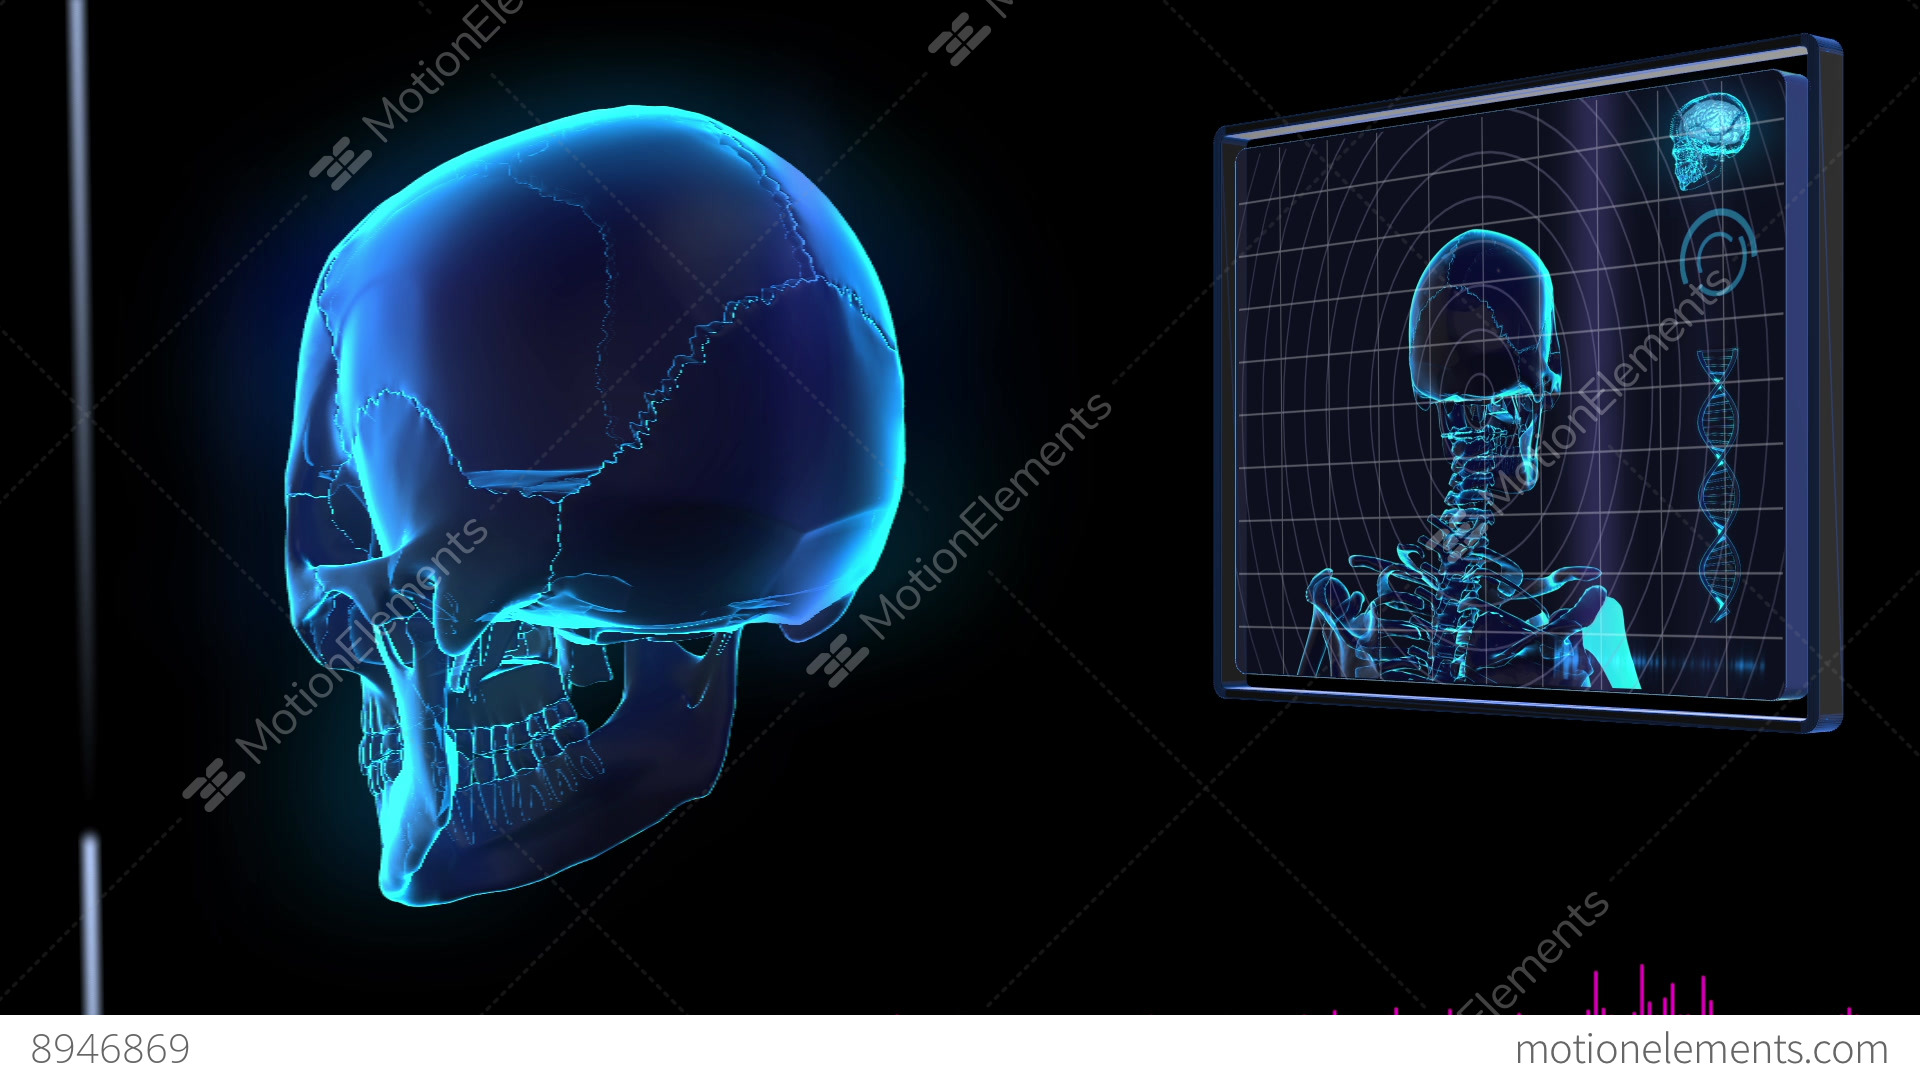 Hud Stunning Science Fiction Medical Design Element Human Skull Photo 5 10 Holoshift Tachometer And Shift Light Wiring 05 Perfect Panel Stock Video Footage With